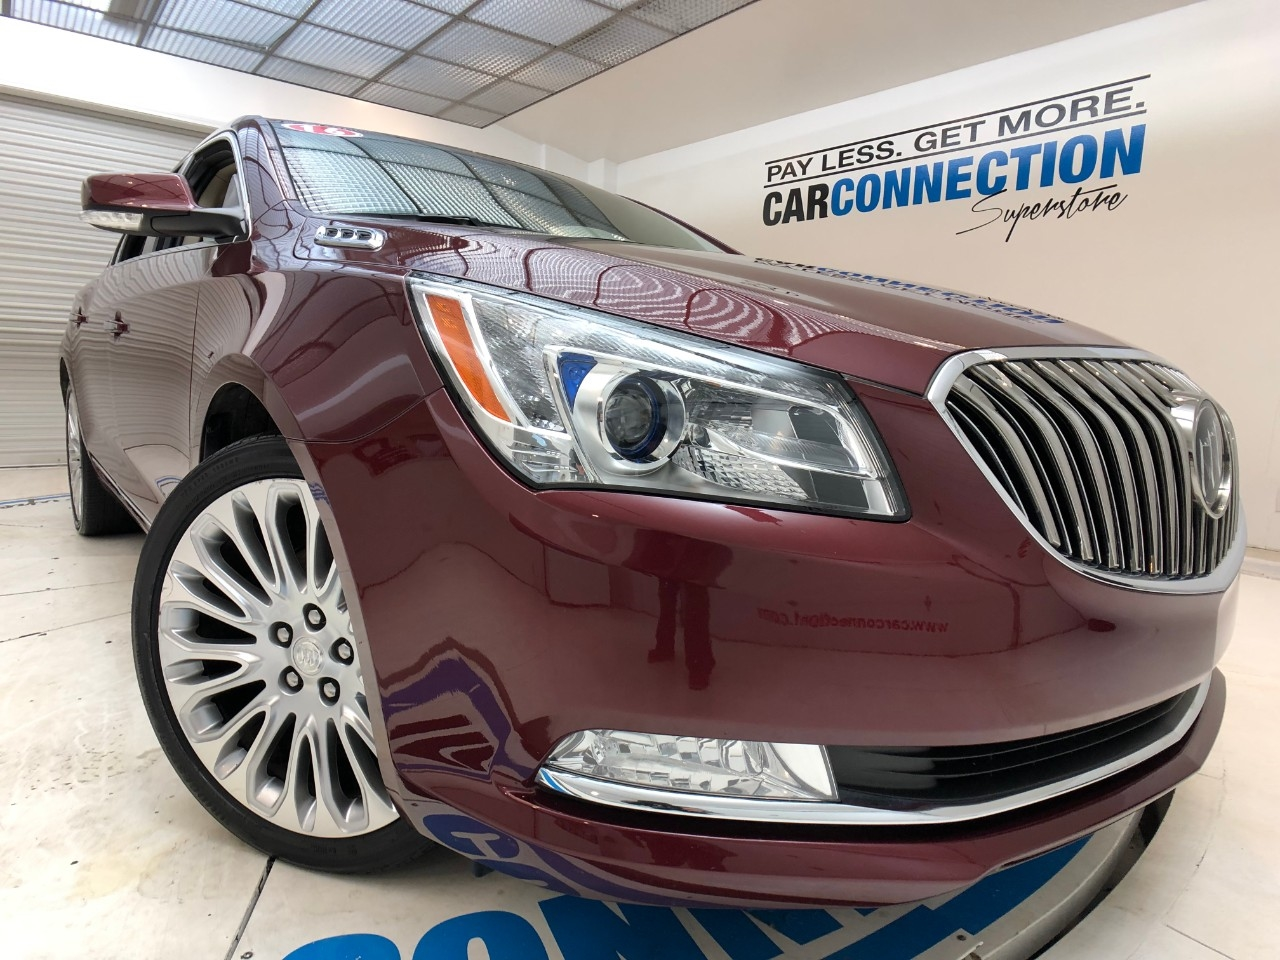 Pre-Owned 2016 Buick LaCrosse 4DR SDN PREMIUM I AWD. NAVIGATION, DUAL SUNROOF, HEATED/COOLED LEATHER SEATS, ADAPTIVE CRUISE, LANE DEPARTURE WARNING, LOADED!!